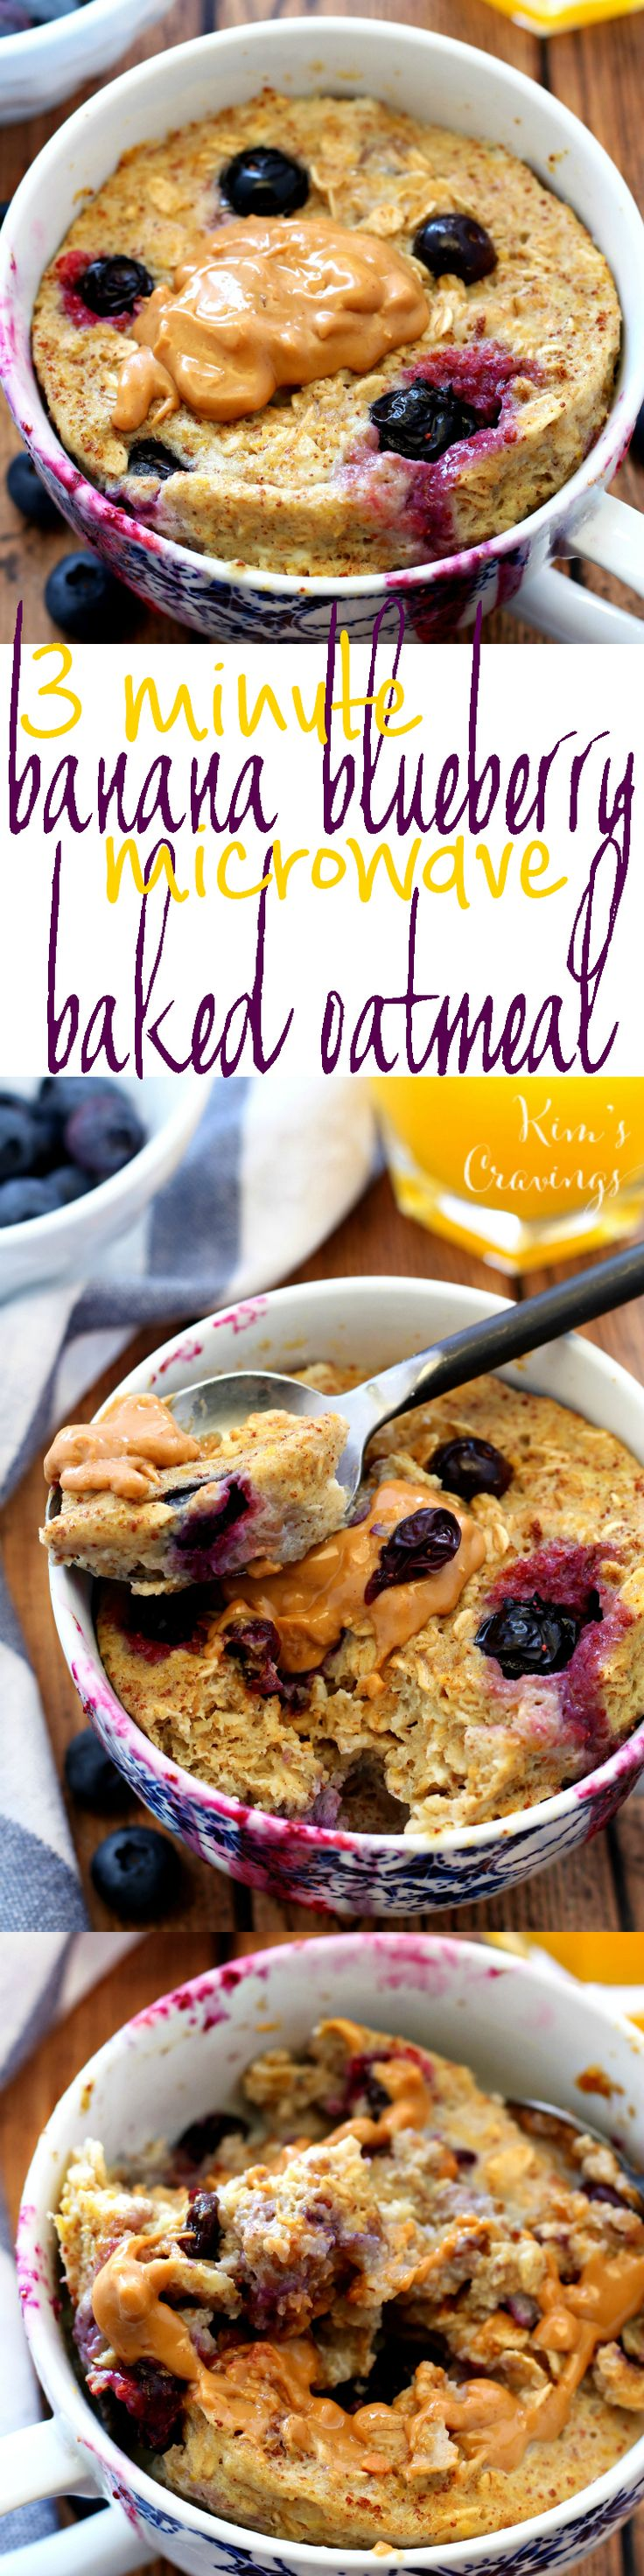 "3 Minute Blueberry Banana Microwave ""Baked"" Oatmeal in a Mug- a quick, easy and oh so scrumptious gluten-free breakfast recipe!"